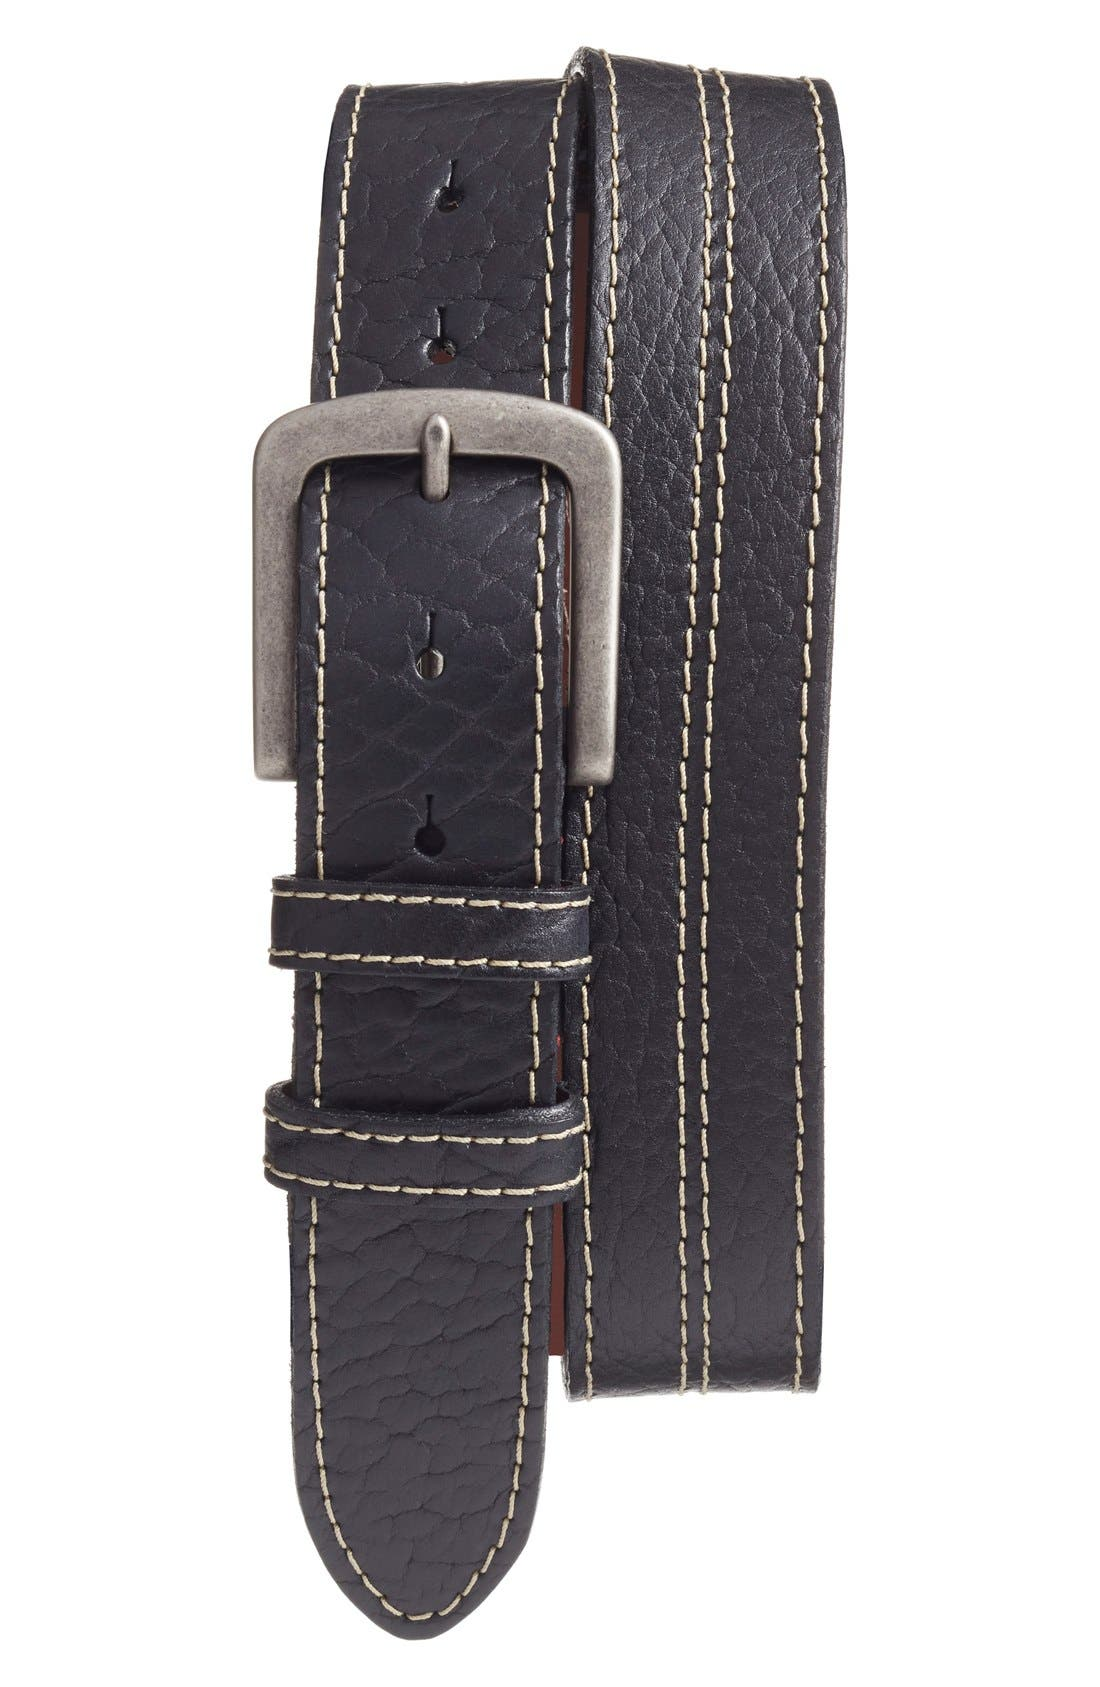 TORINO BELTS Bison Leather Belt